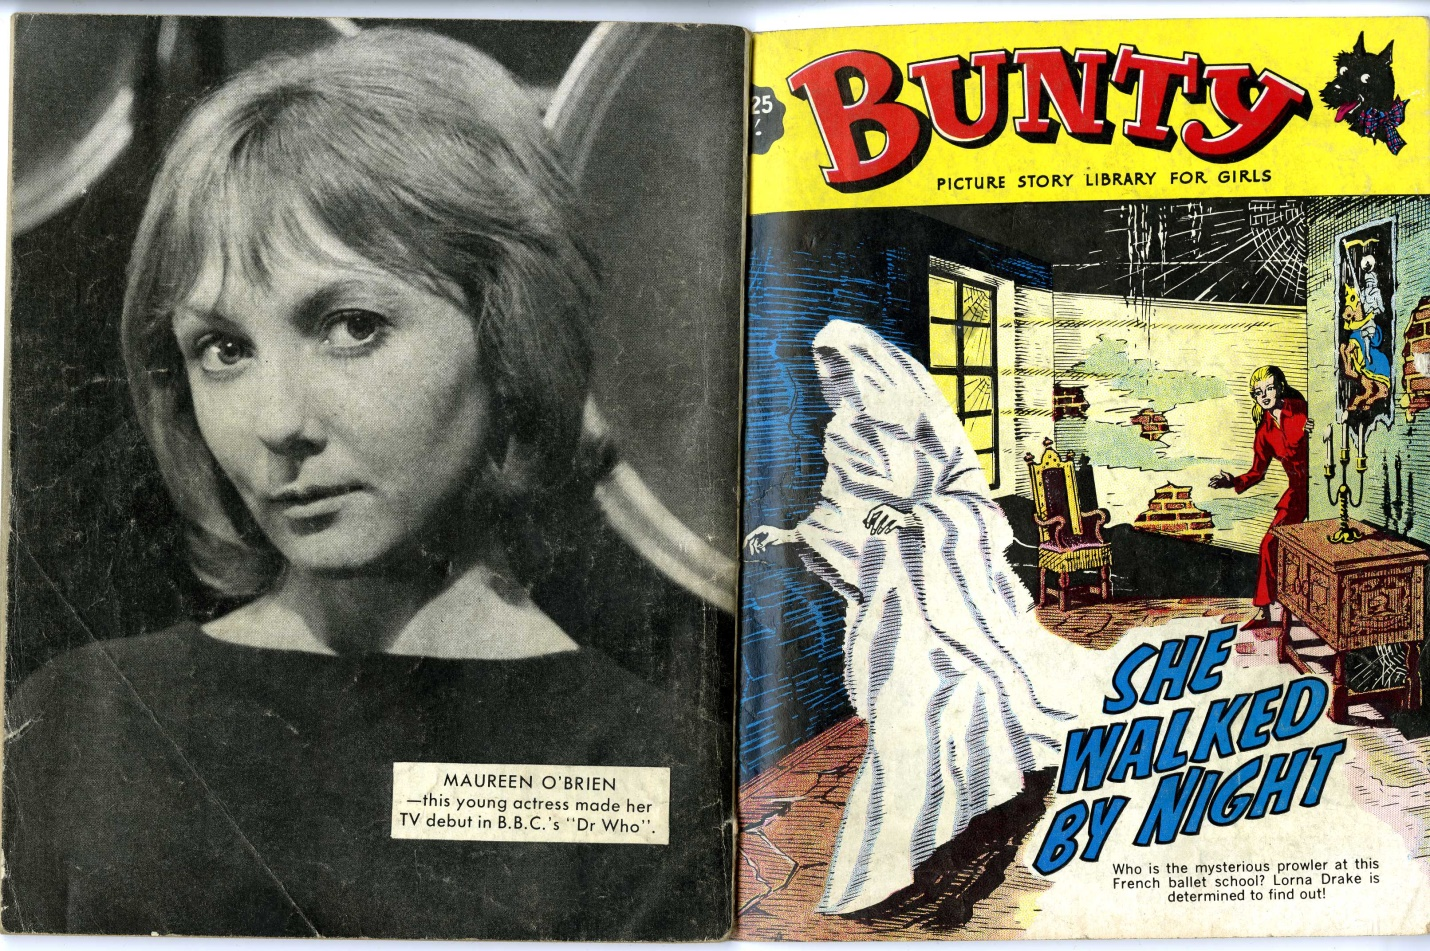 Bunty Picture Story Library for Girls, 1965 featuring back cover photo of Maureen O'Brien as Vicki